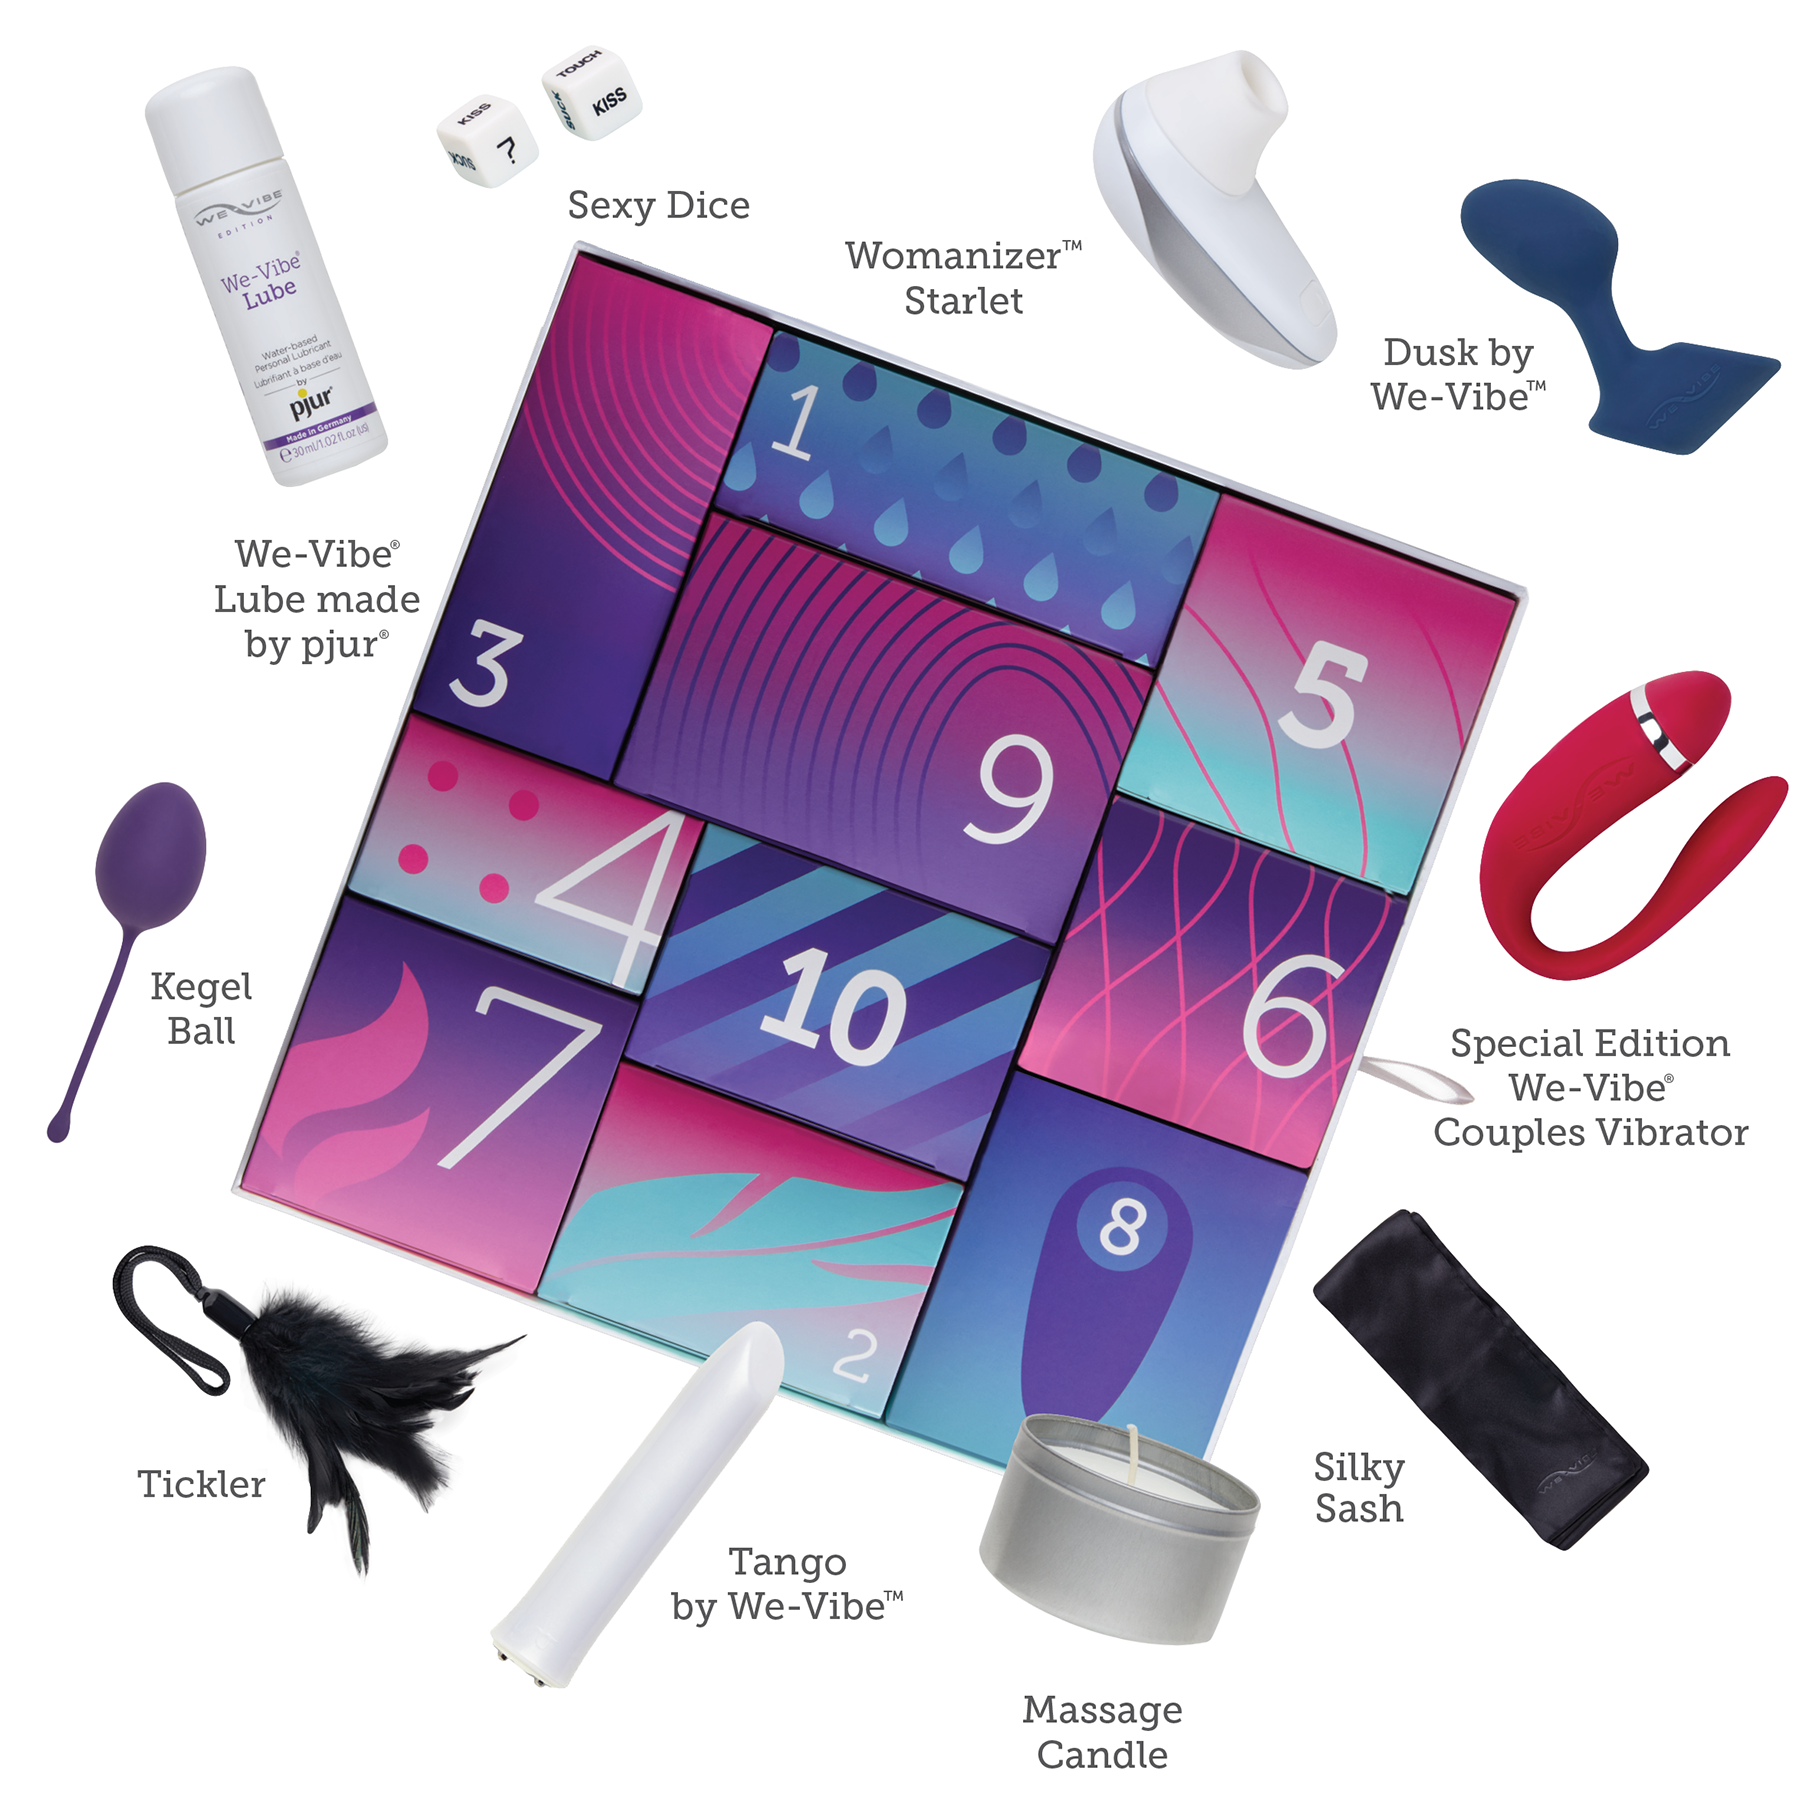 We-Vibe Discover Gift Box - Ten Beautifully Packaged Luxurious Gifts